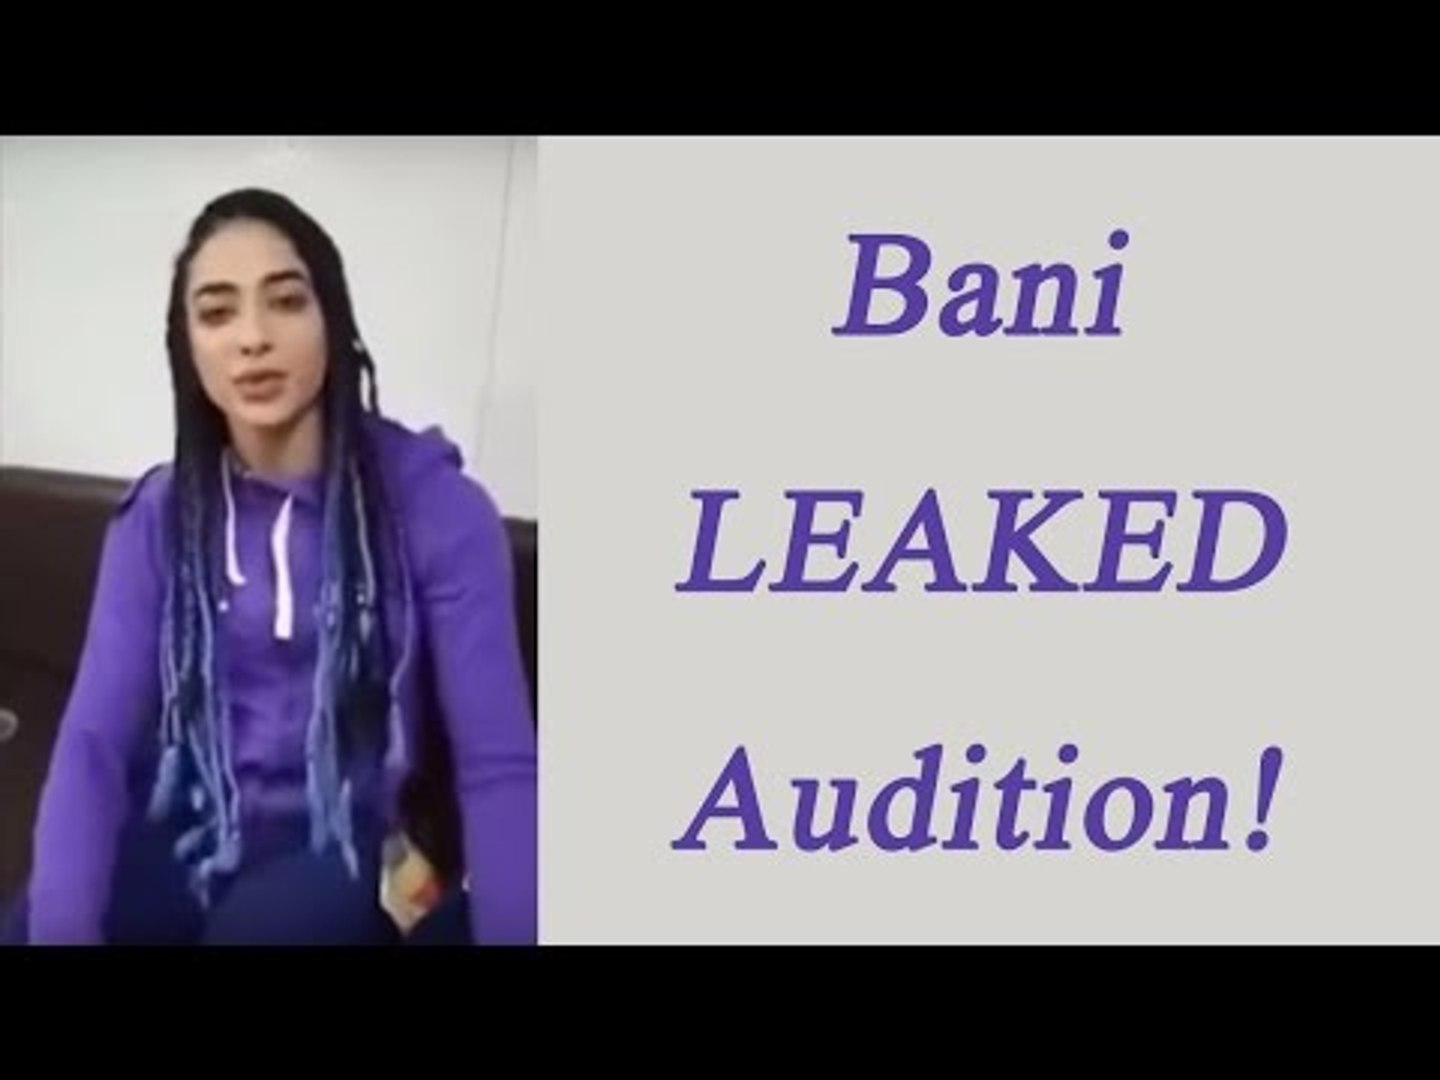 Bigg Boss 10: Bani J Leaked audition video | FilmiBeat